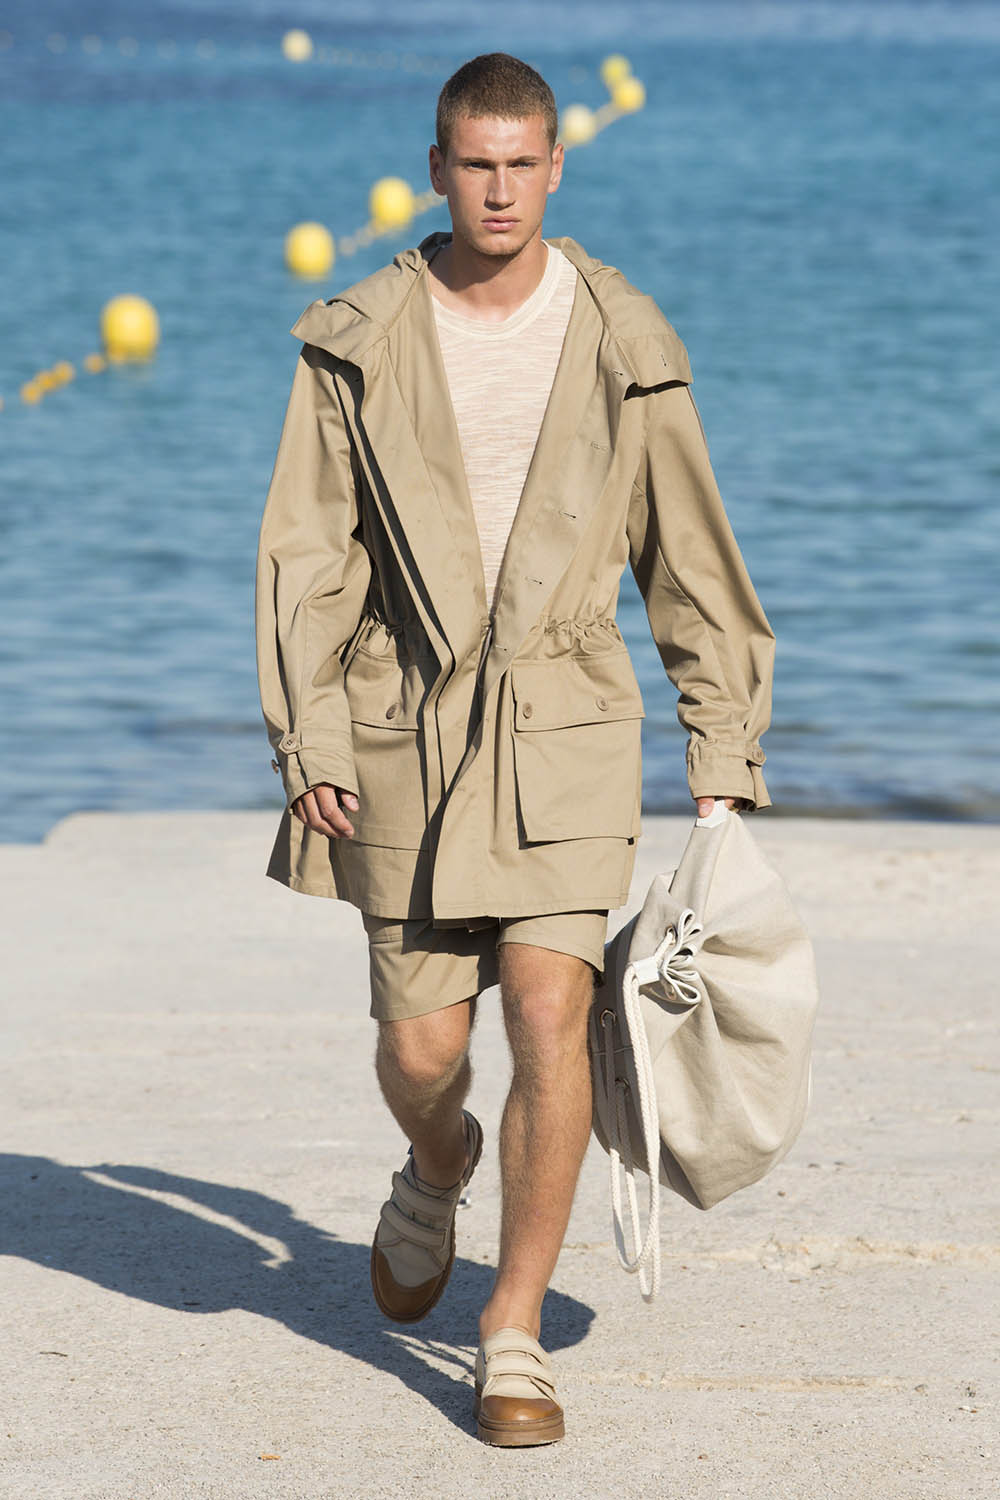 Jacquemus Paris Fashion Week Men's SS19 - Sagaboi - Look 12